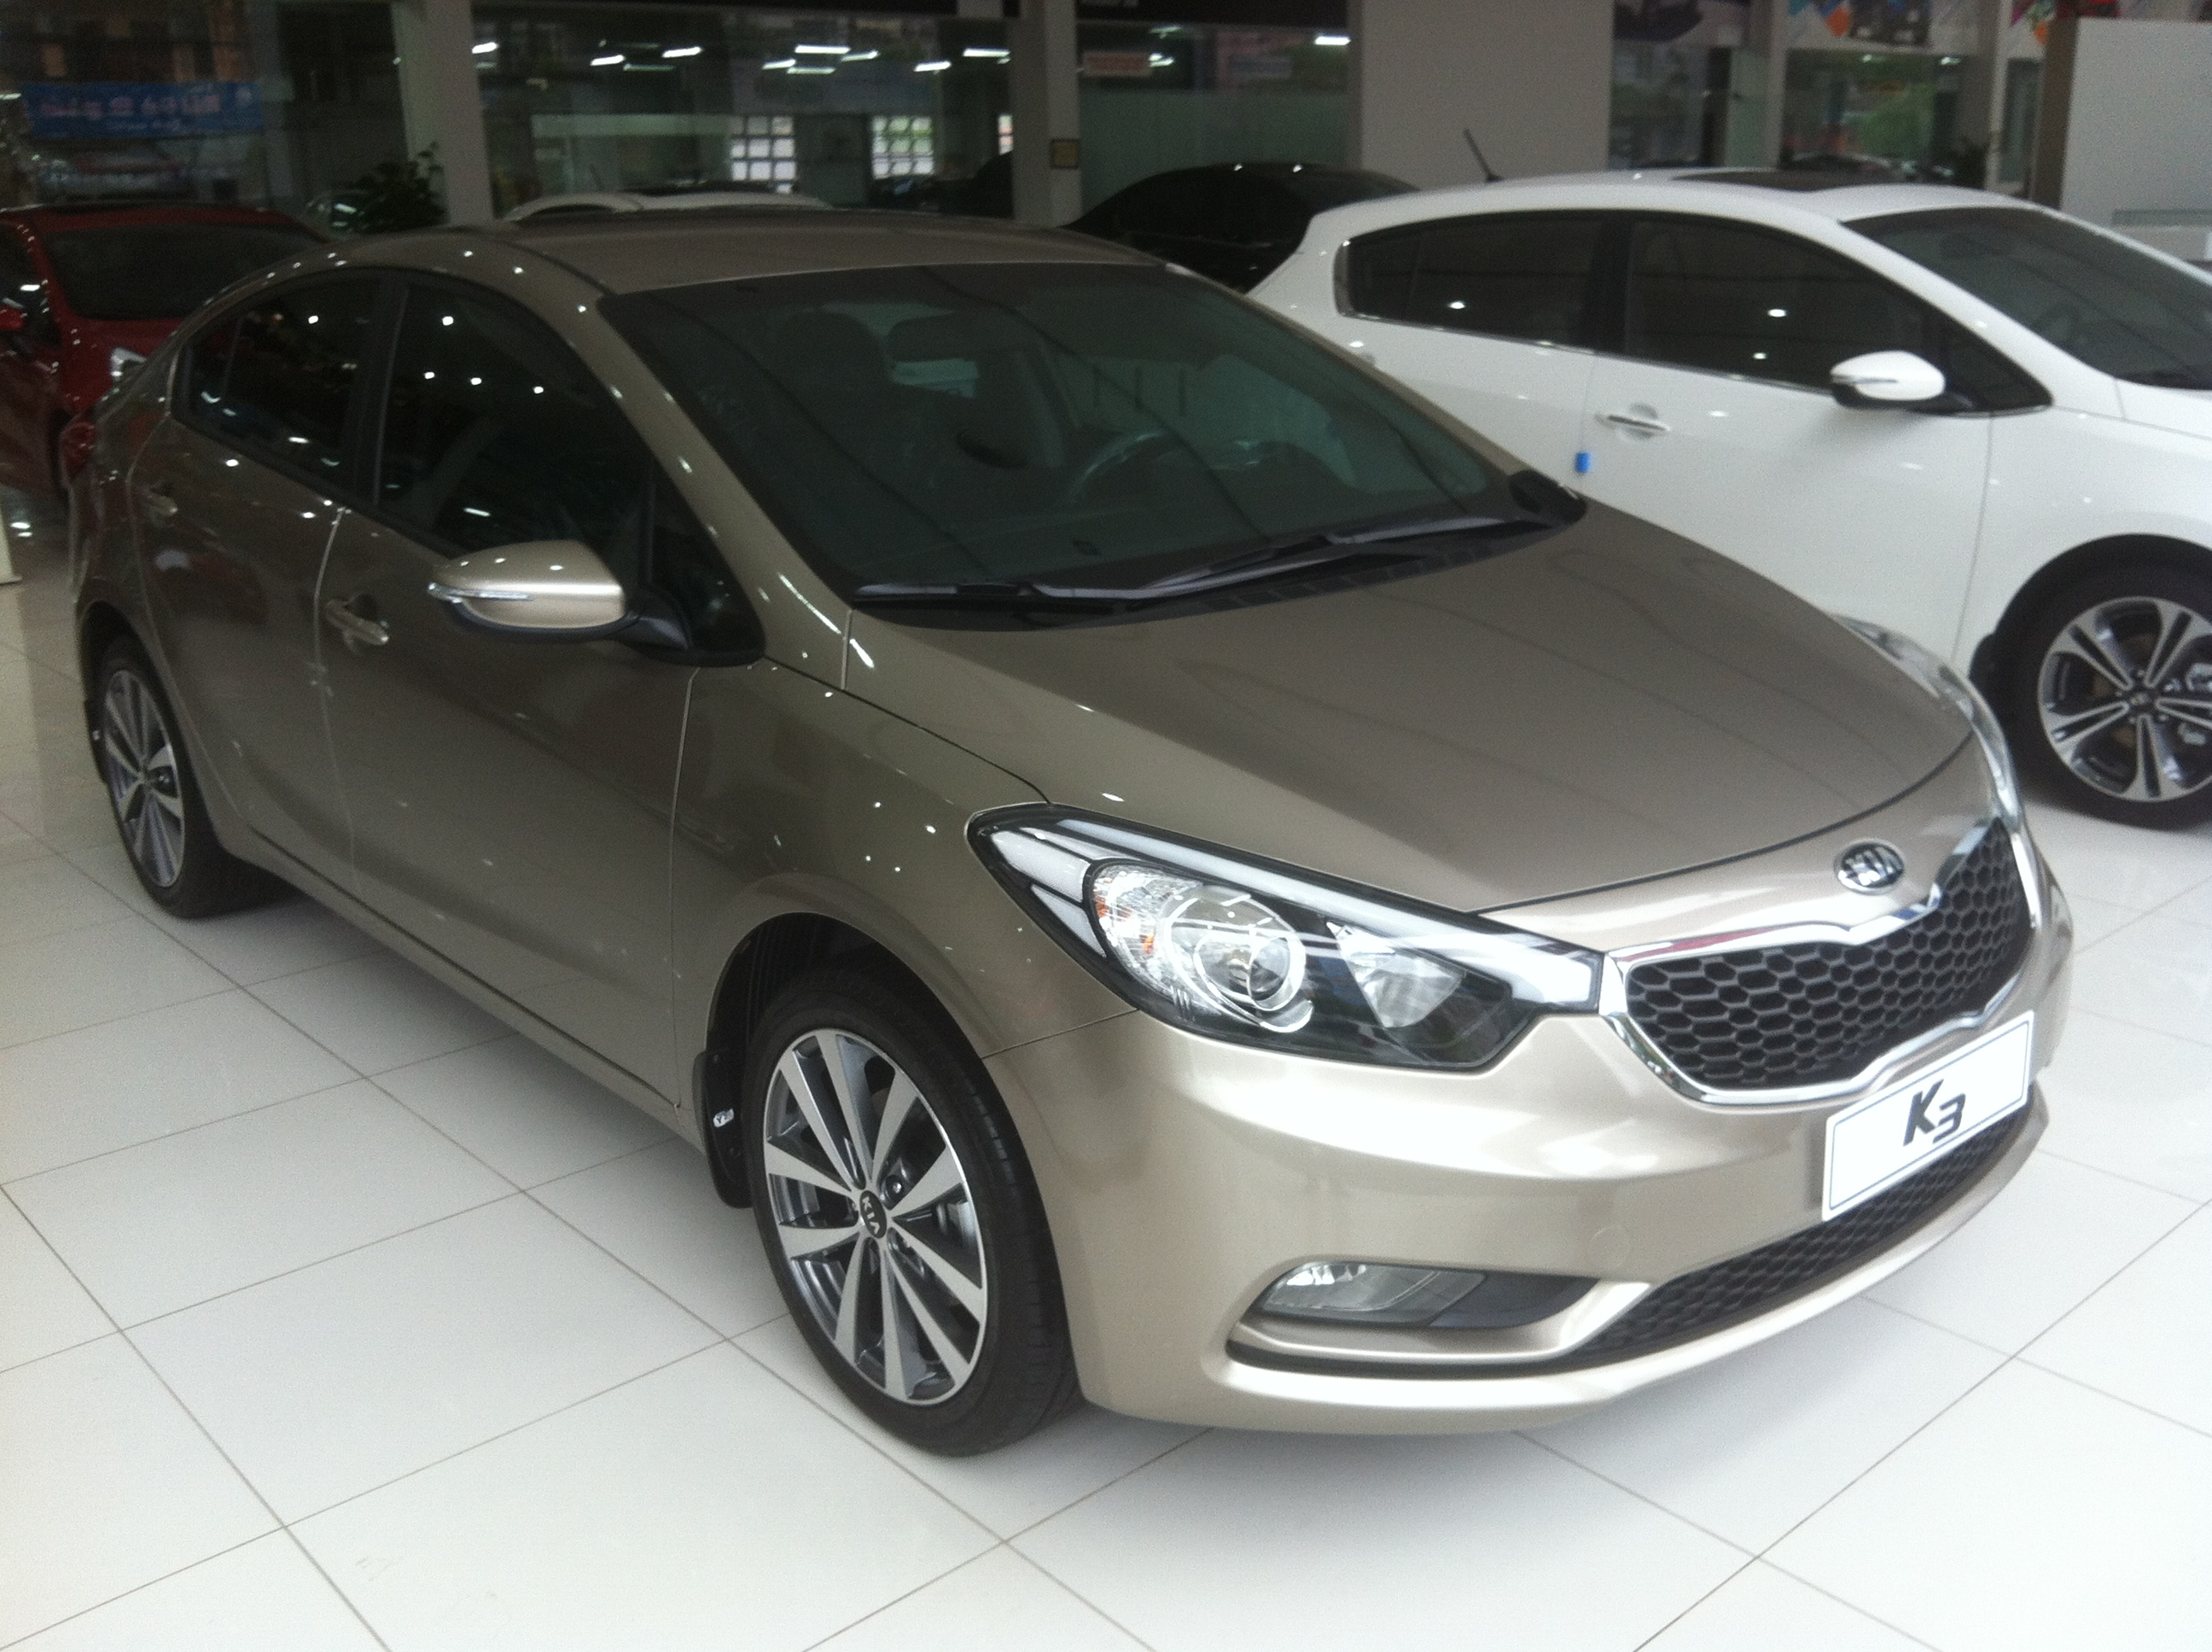 2015 Kia K3 Pictures Information And Specs Auto